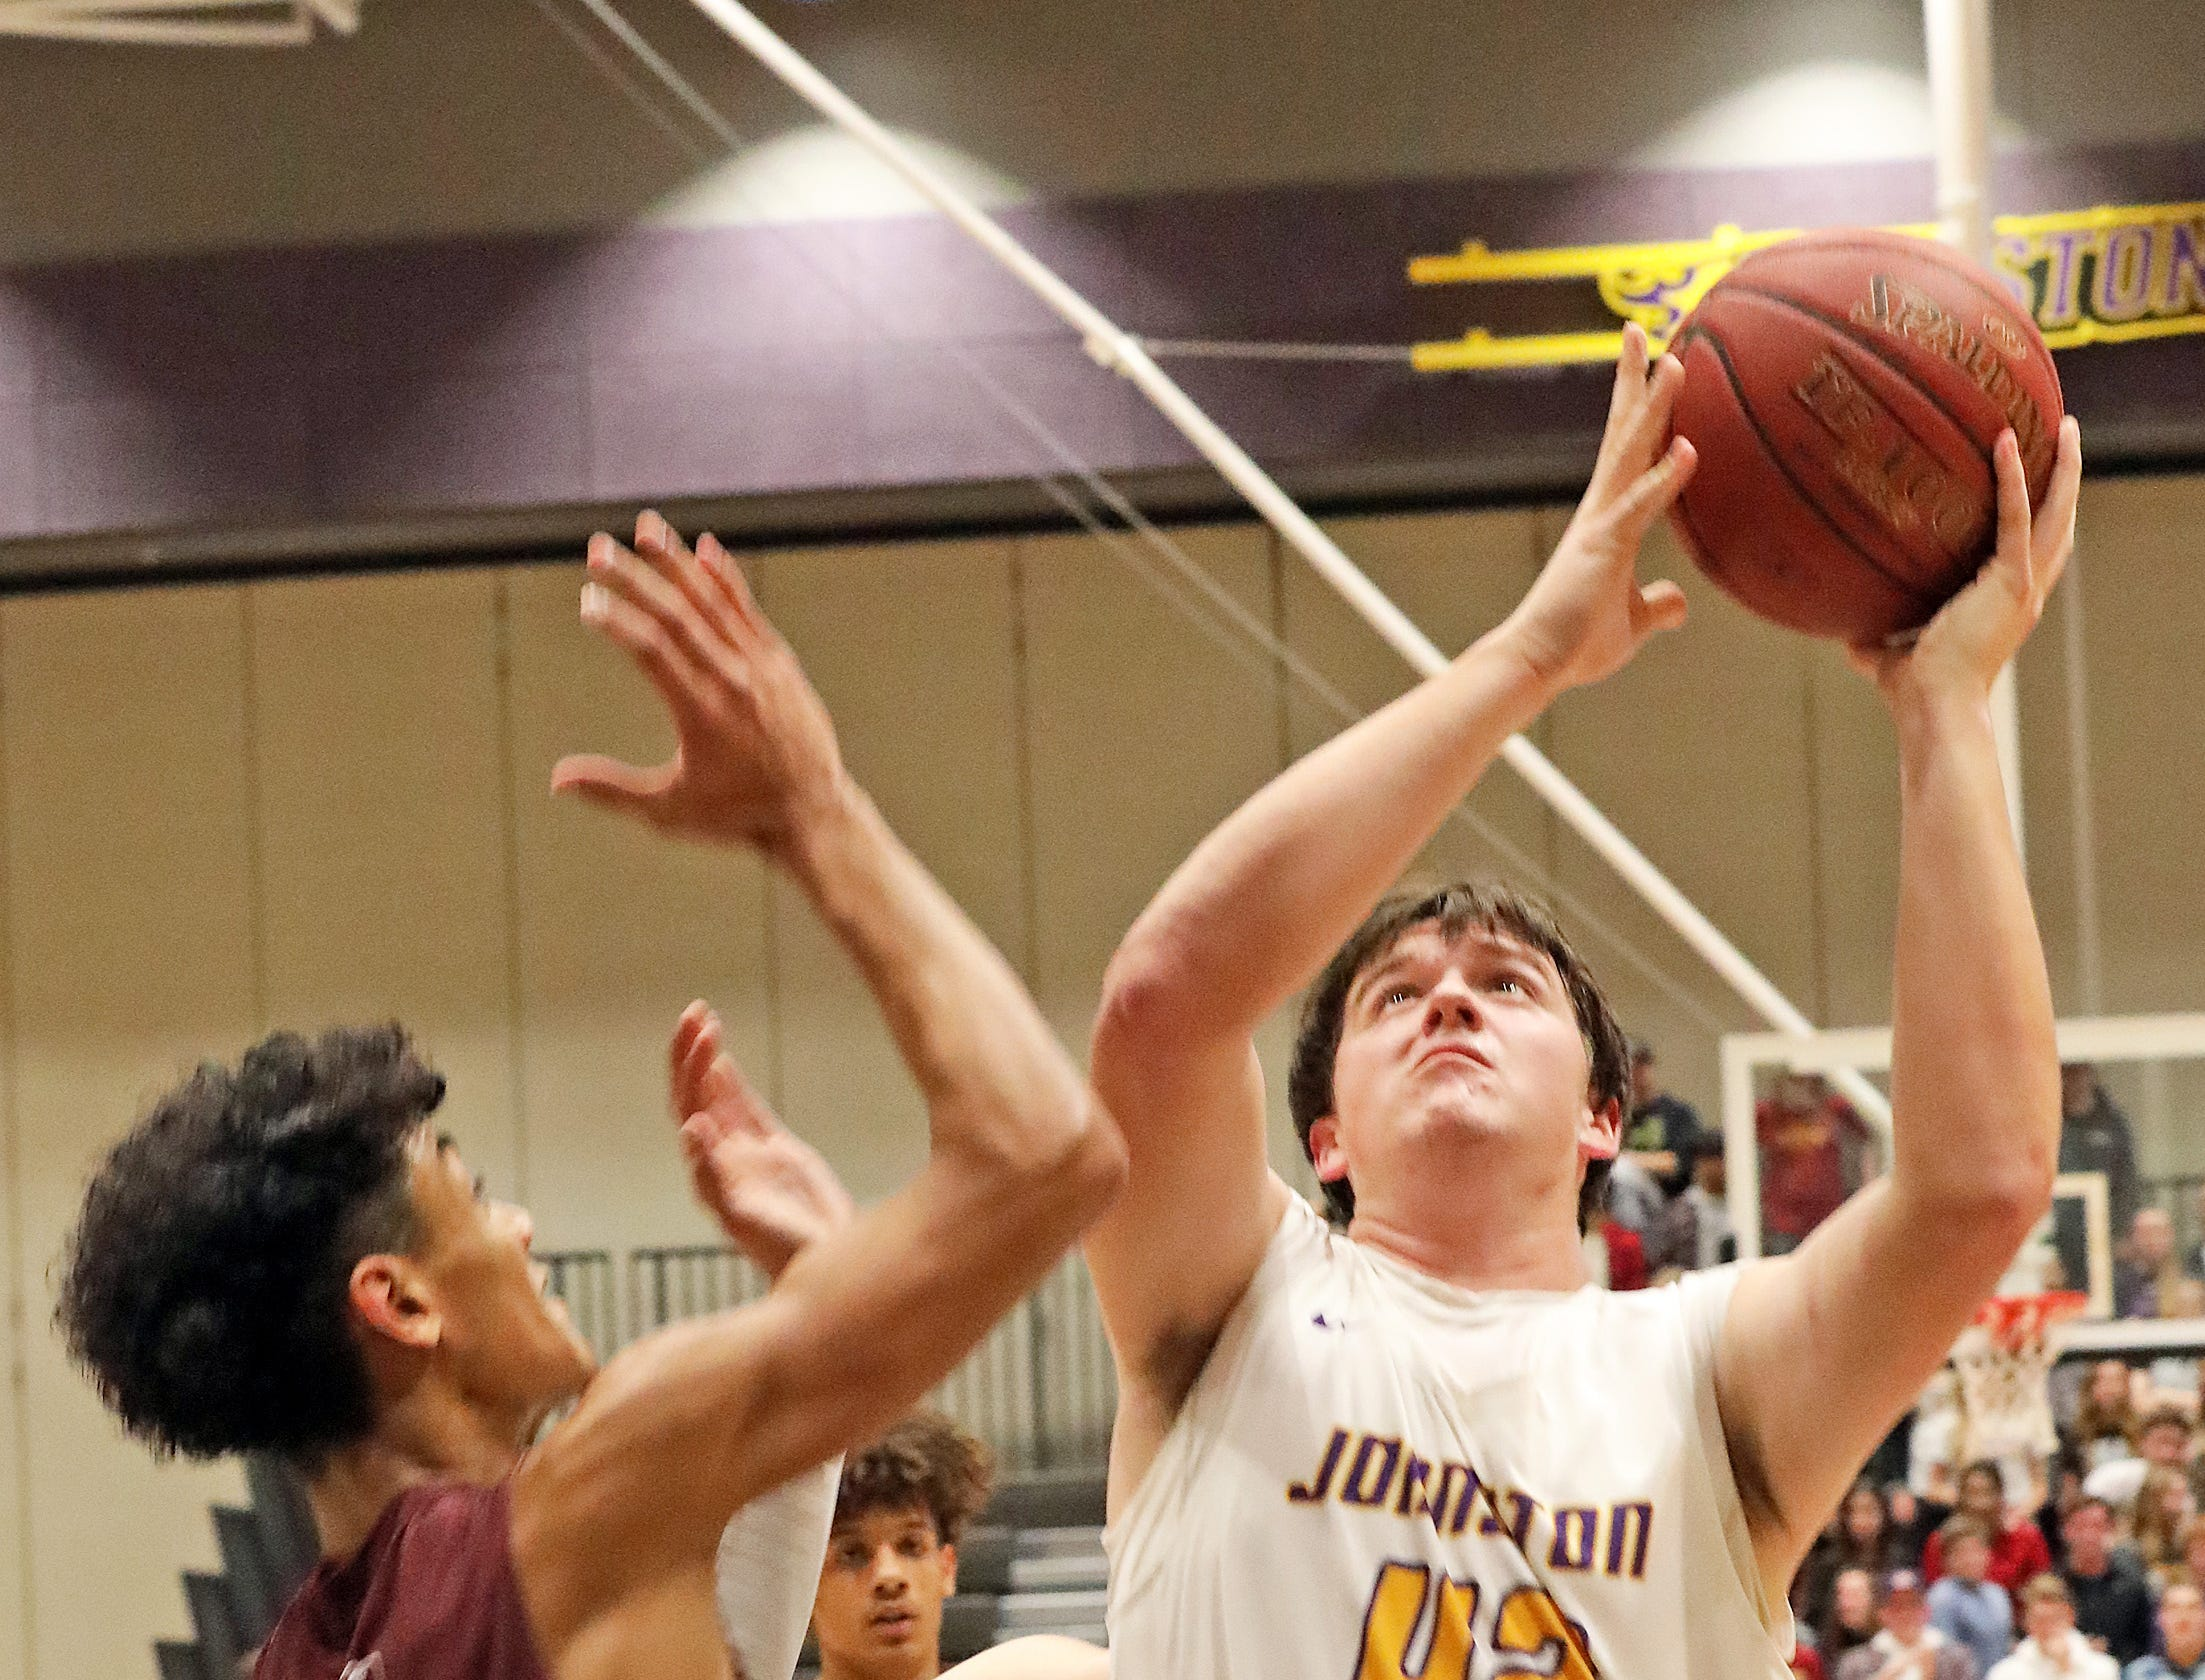 Johnston senior Peyton Williams fights down low as the Ankeny Hawks compete against the Johnston Dragons in high school basketball on Friday, Dec. 21, 2018 at Johnston High School.